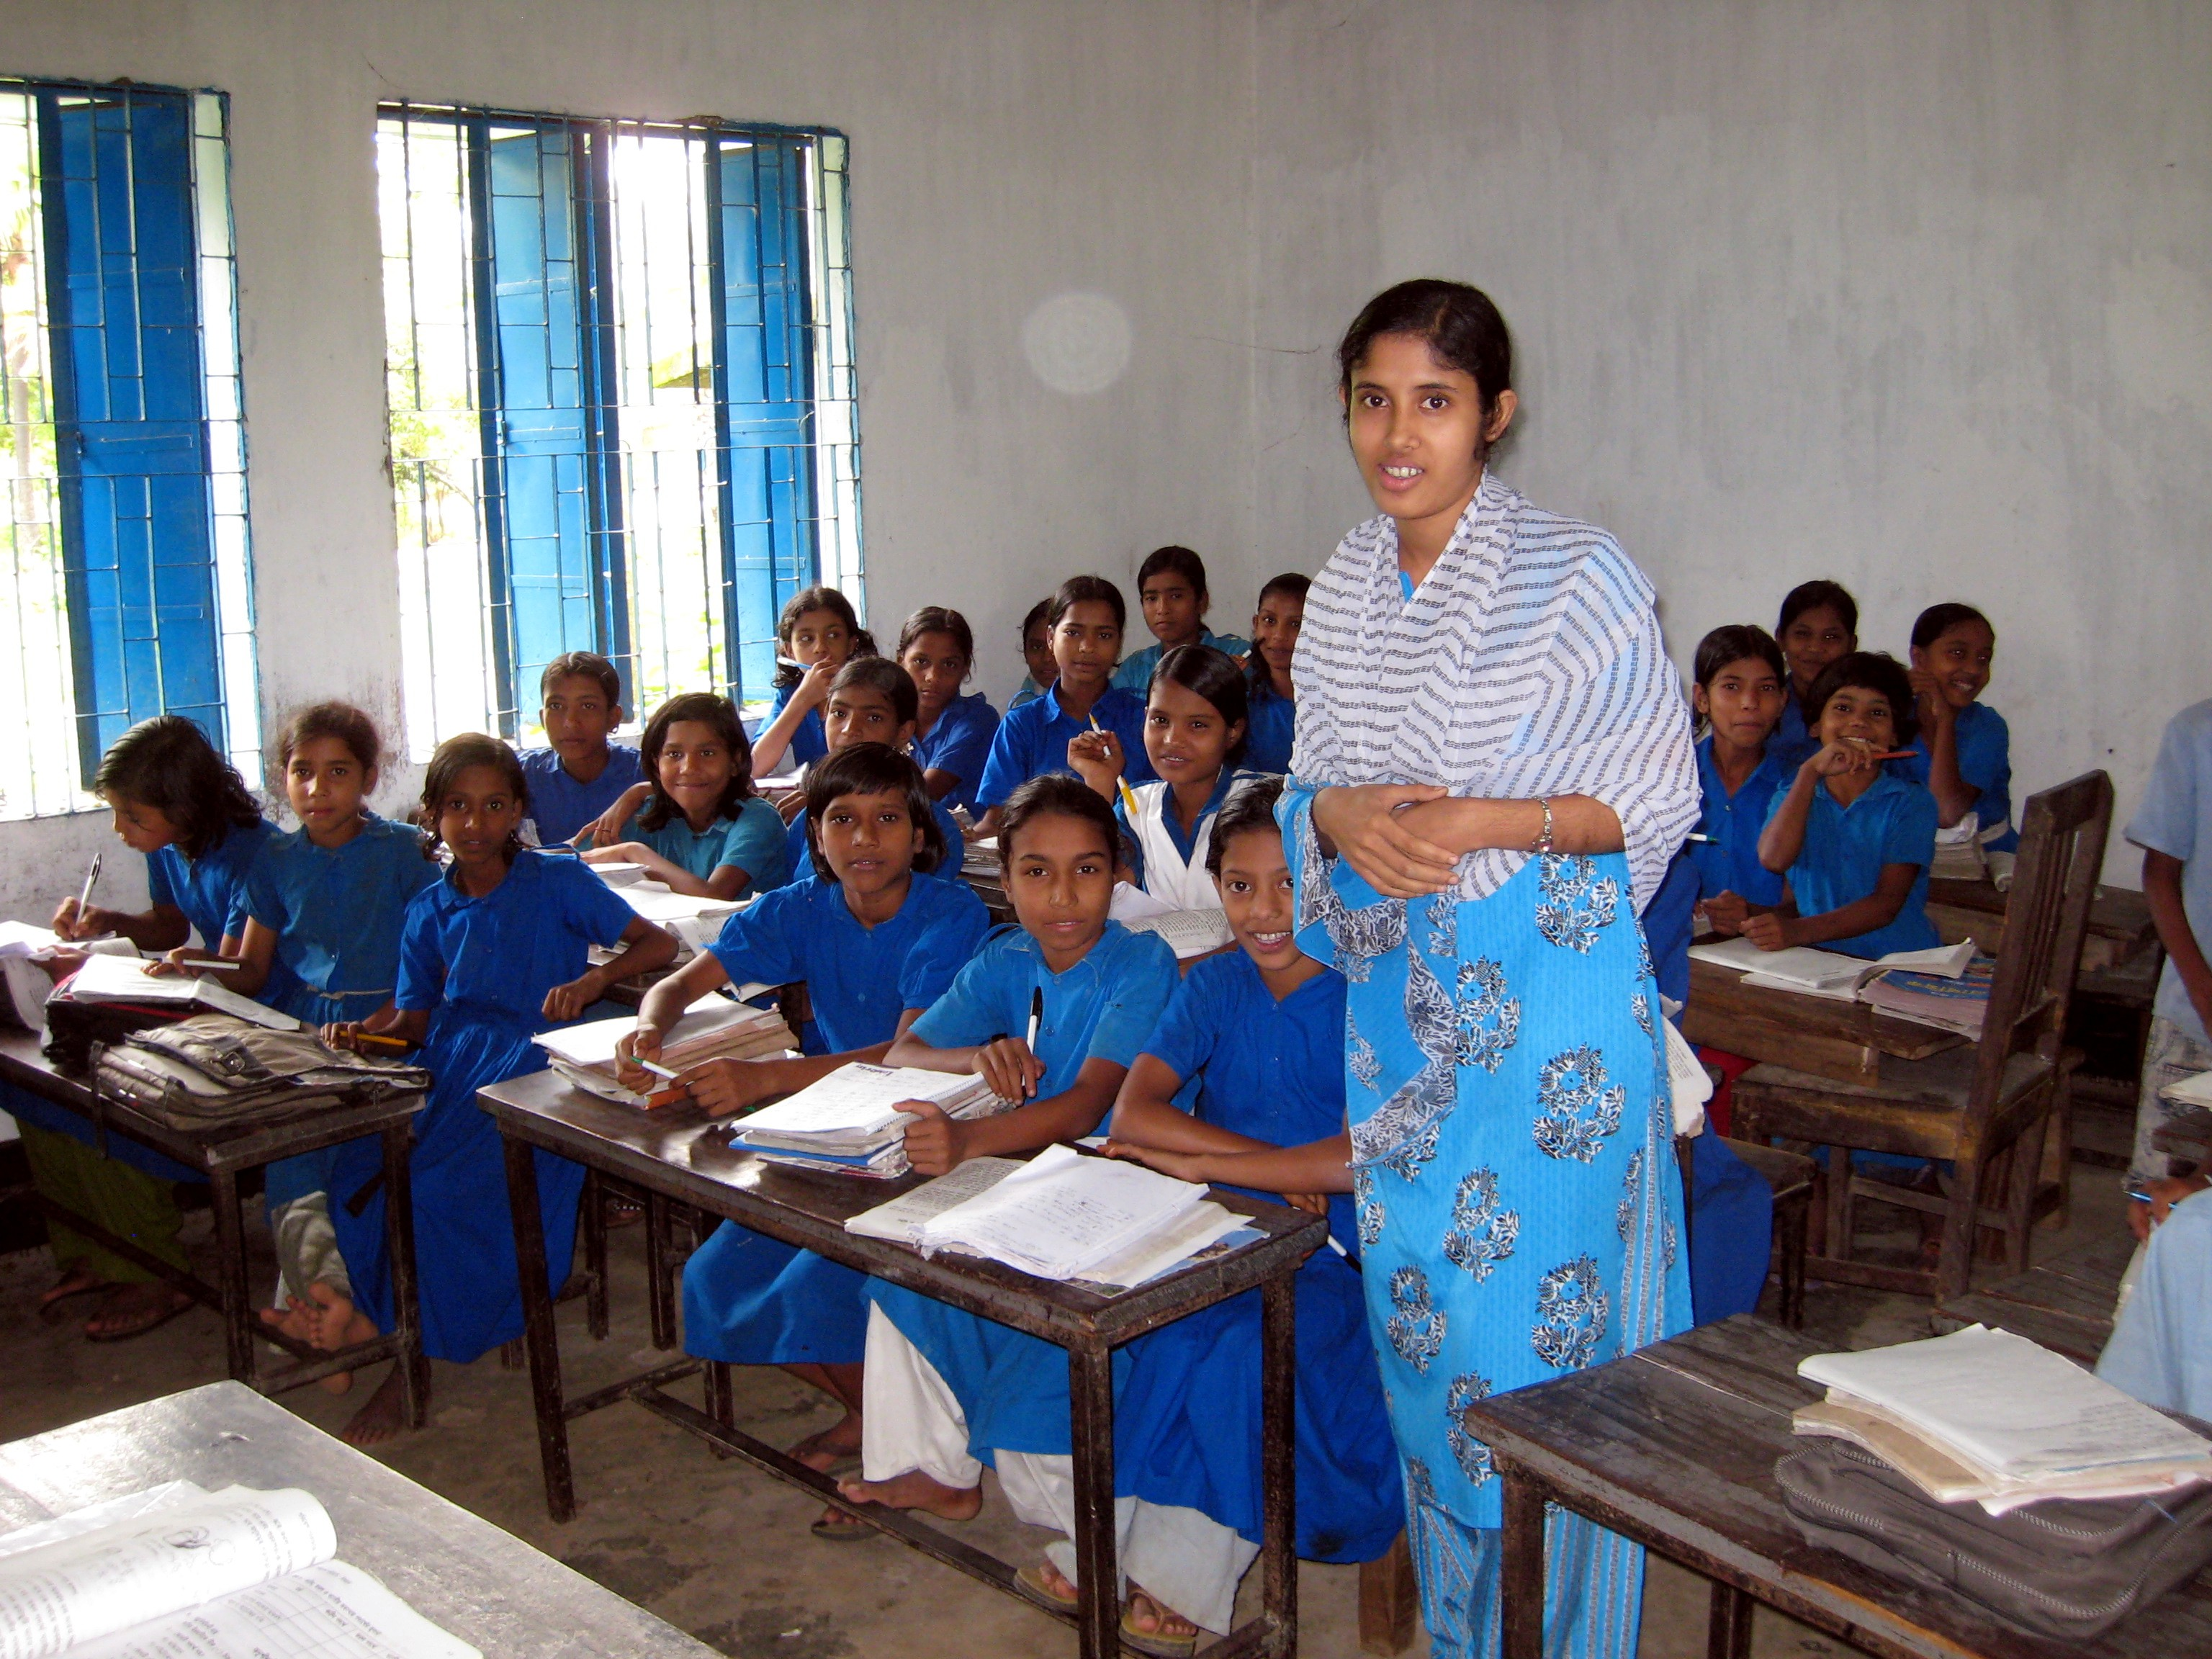 A teacher and her students in their classroom